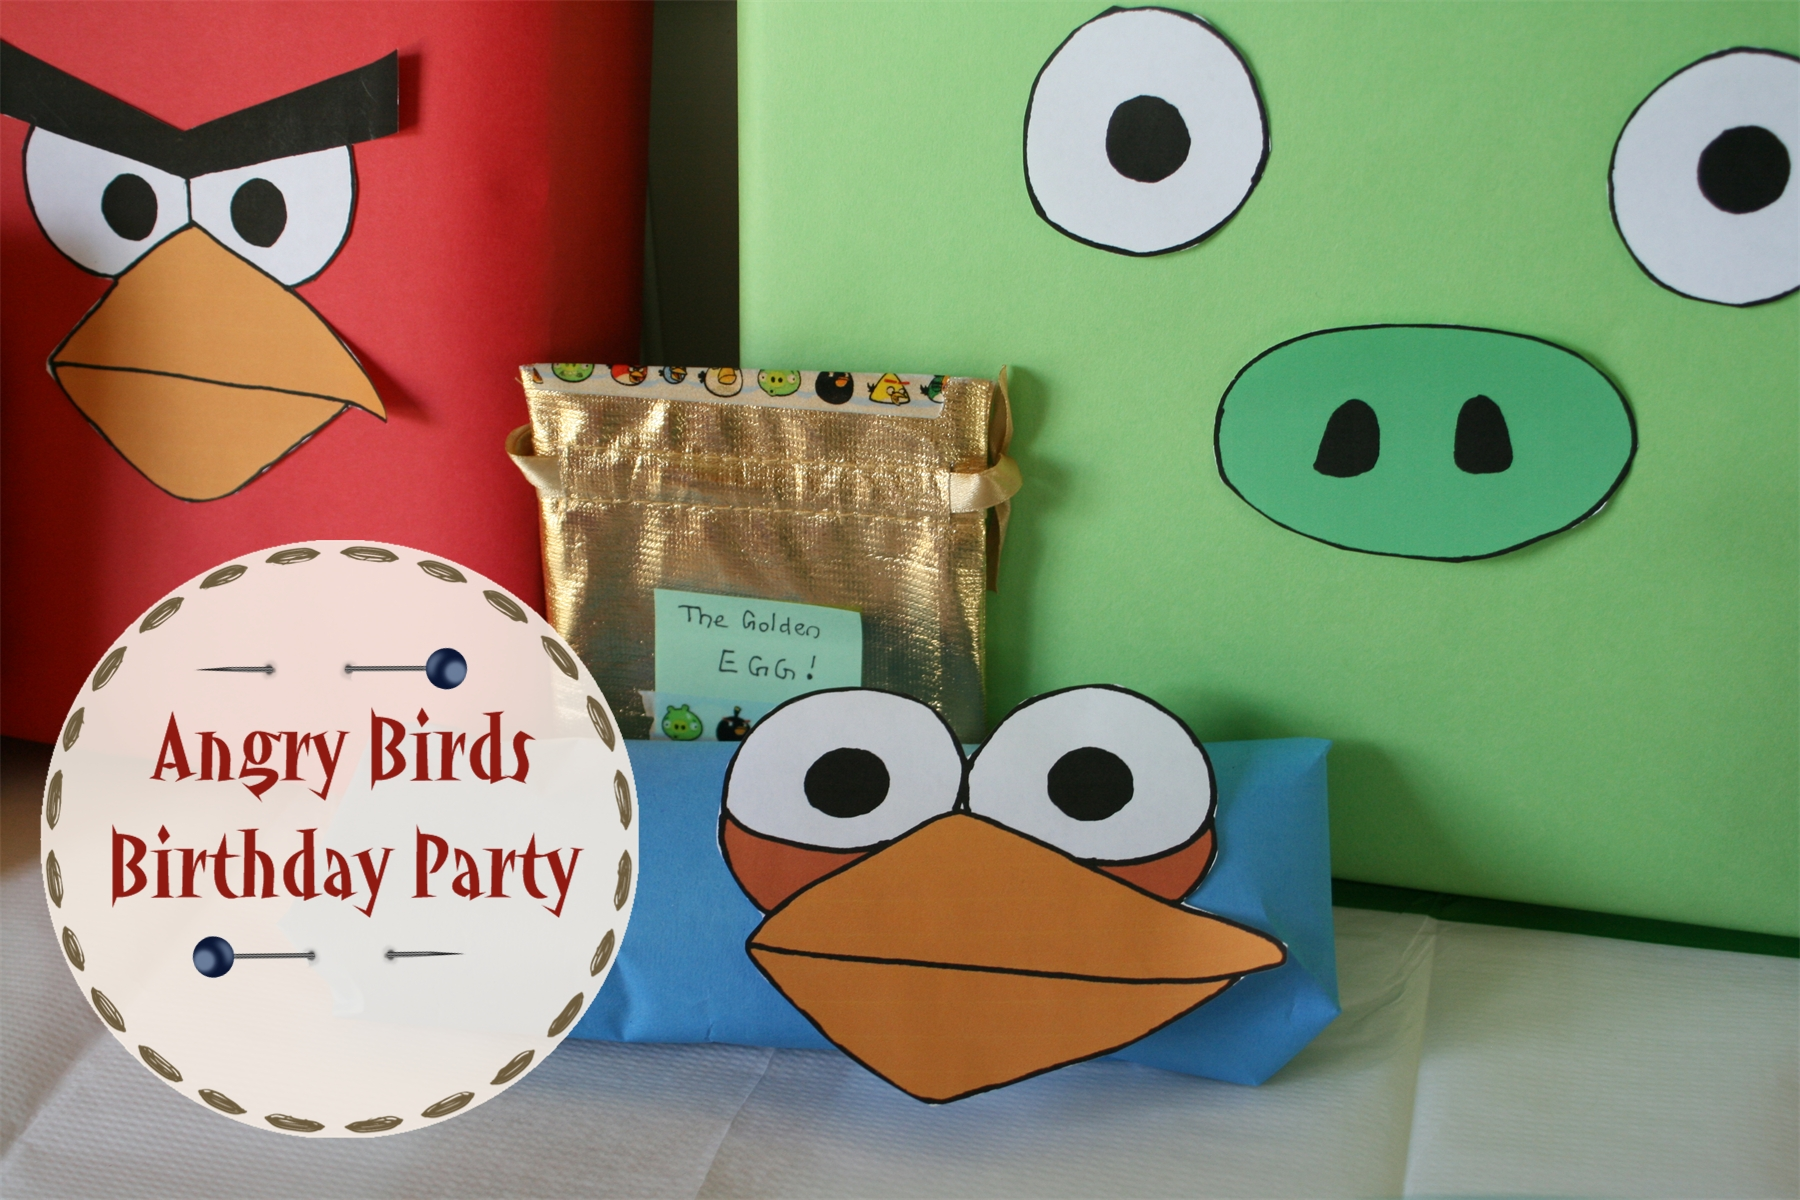 Angry birds birthday party feasting on joy for Angry birds birthday party decoration ideas